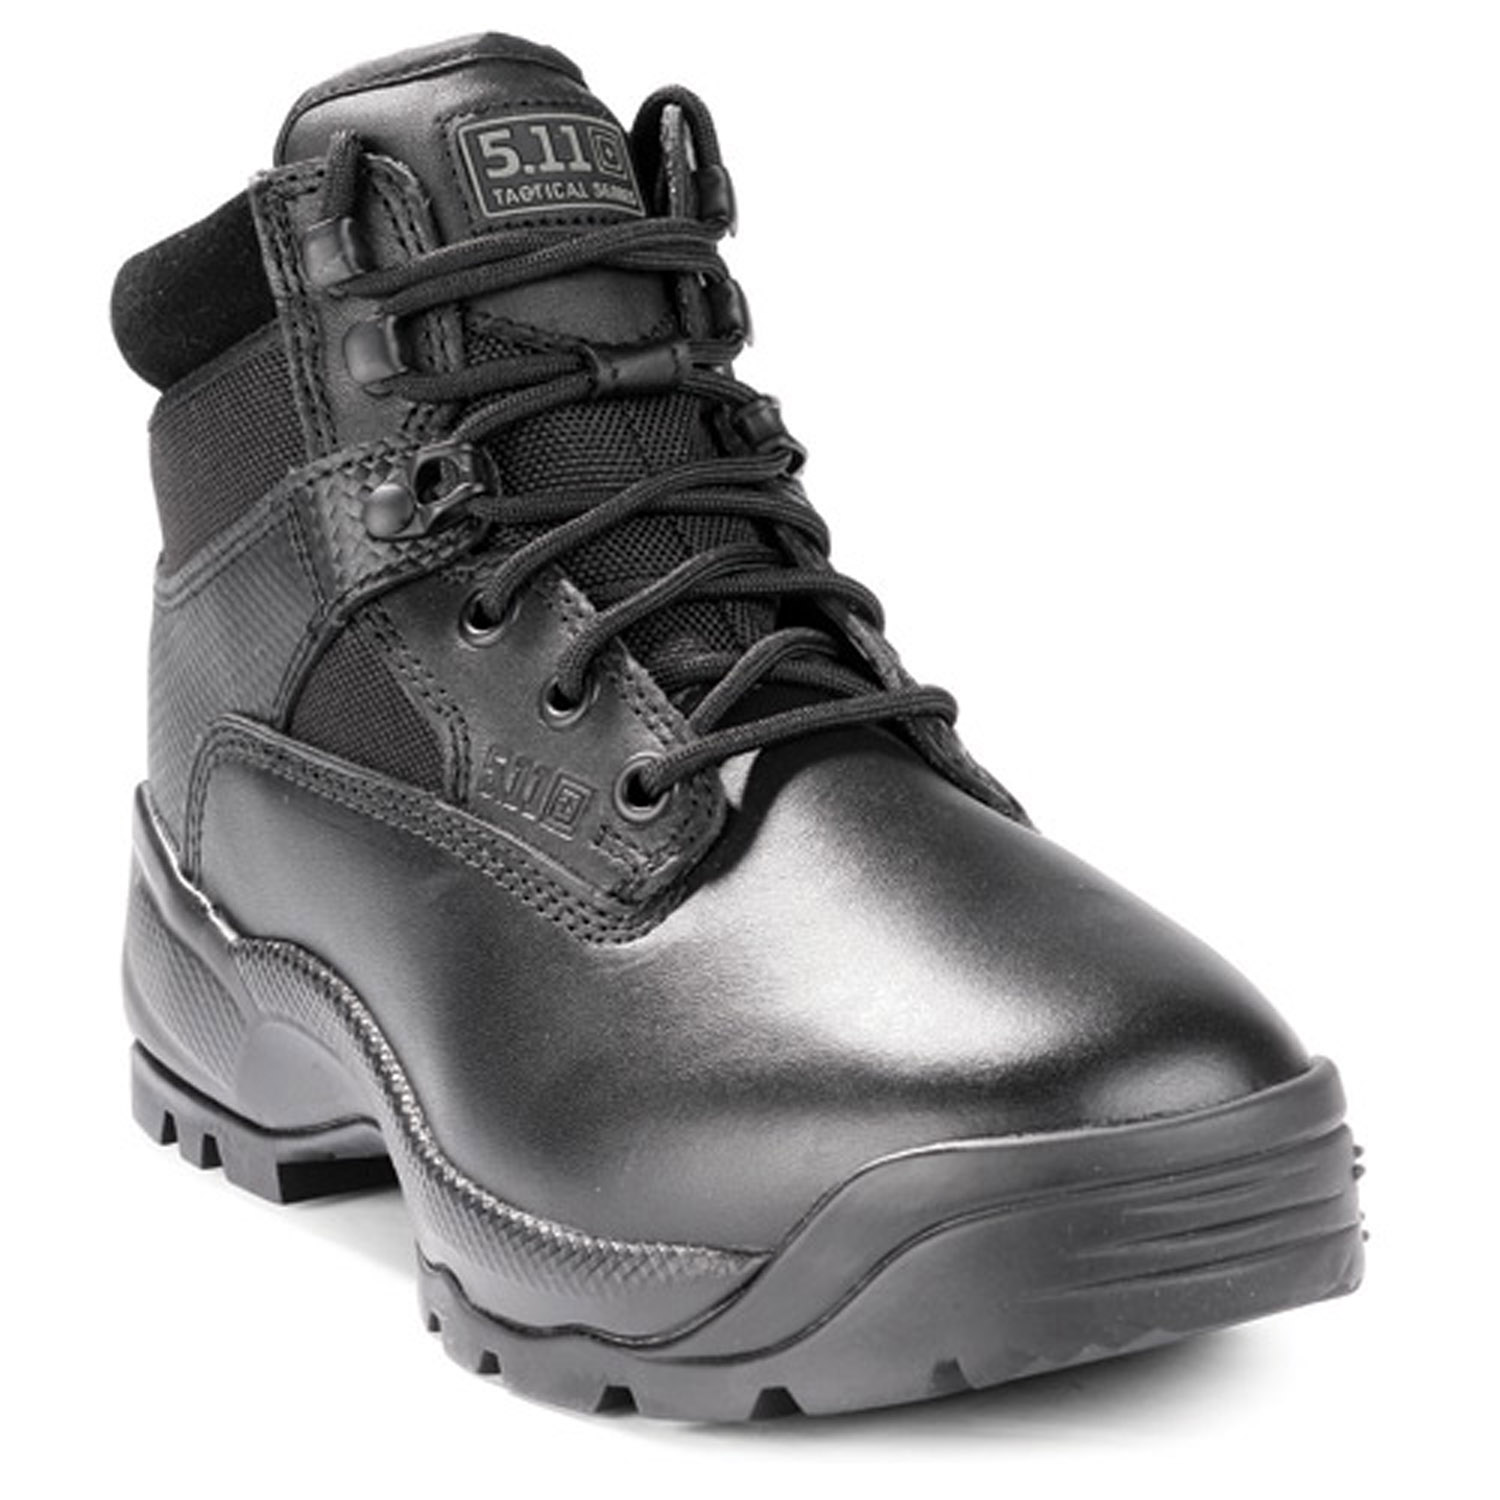 "5.11 Tactical Men's Zipper 6"" Tactical ATAC Quarter Boo"